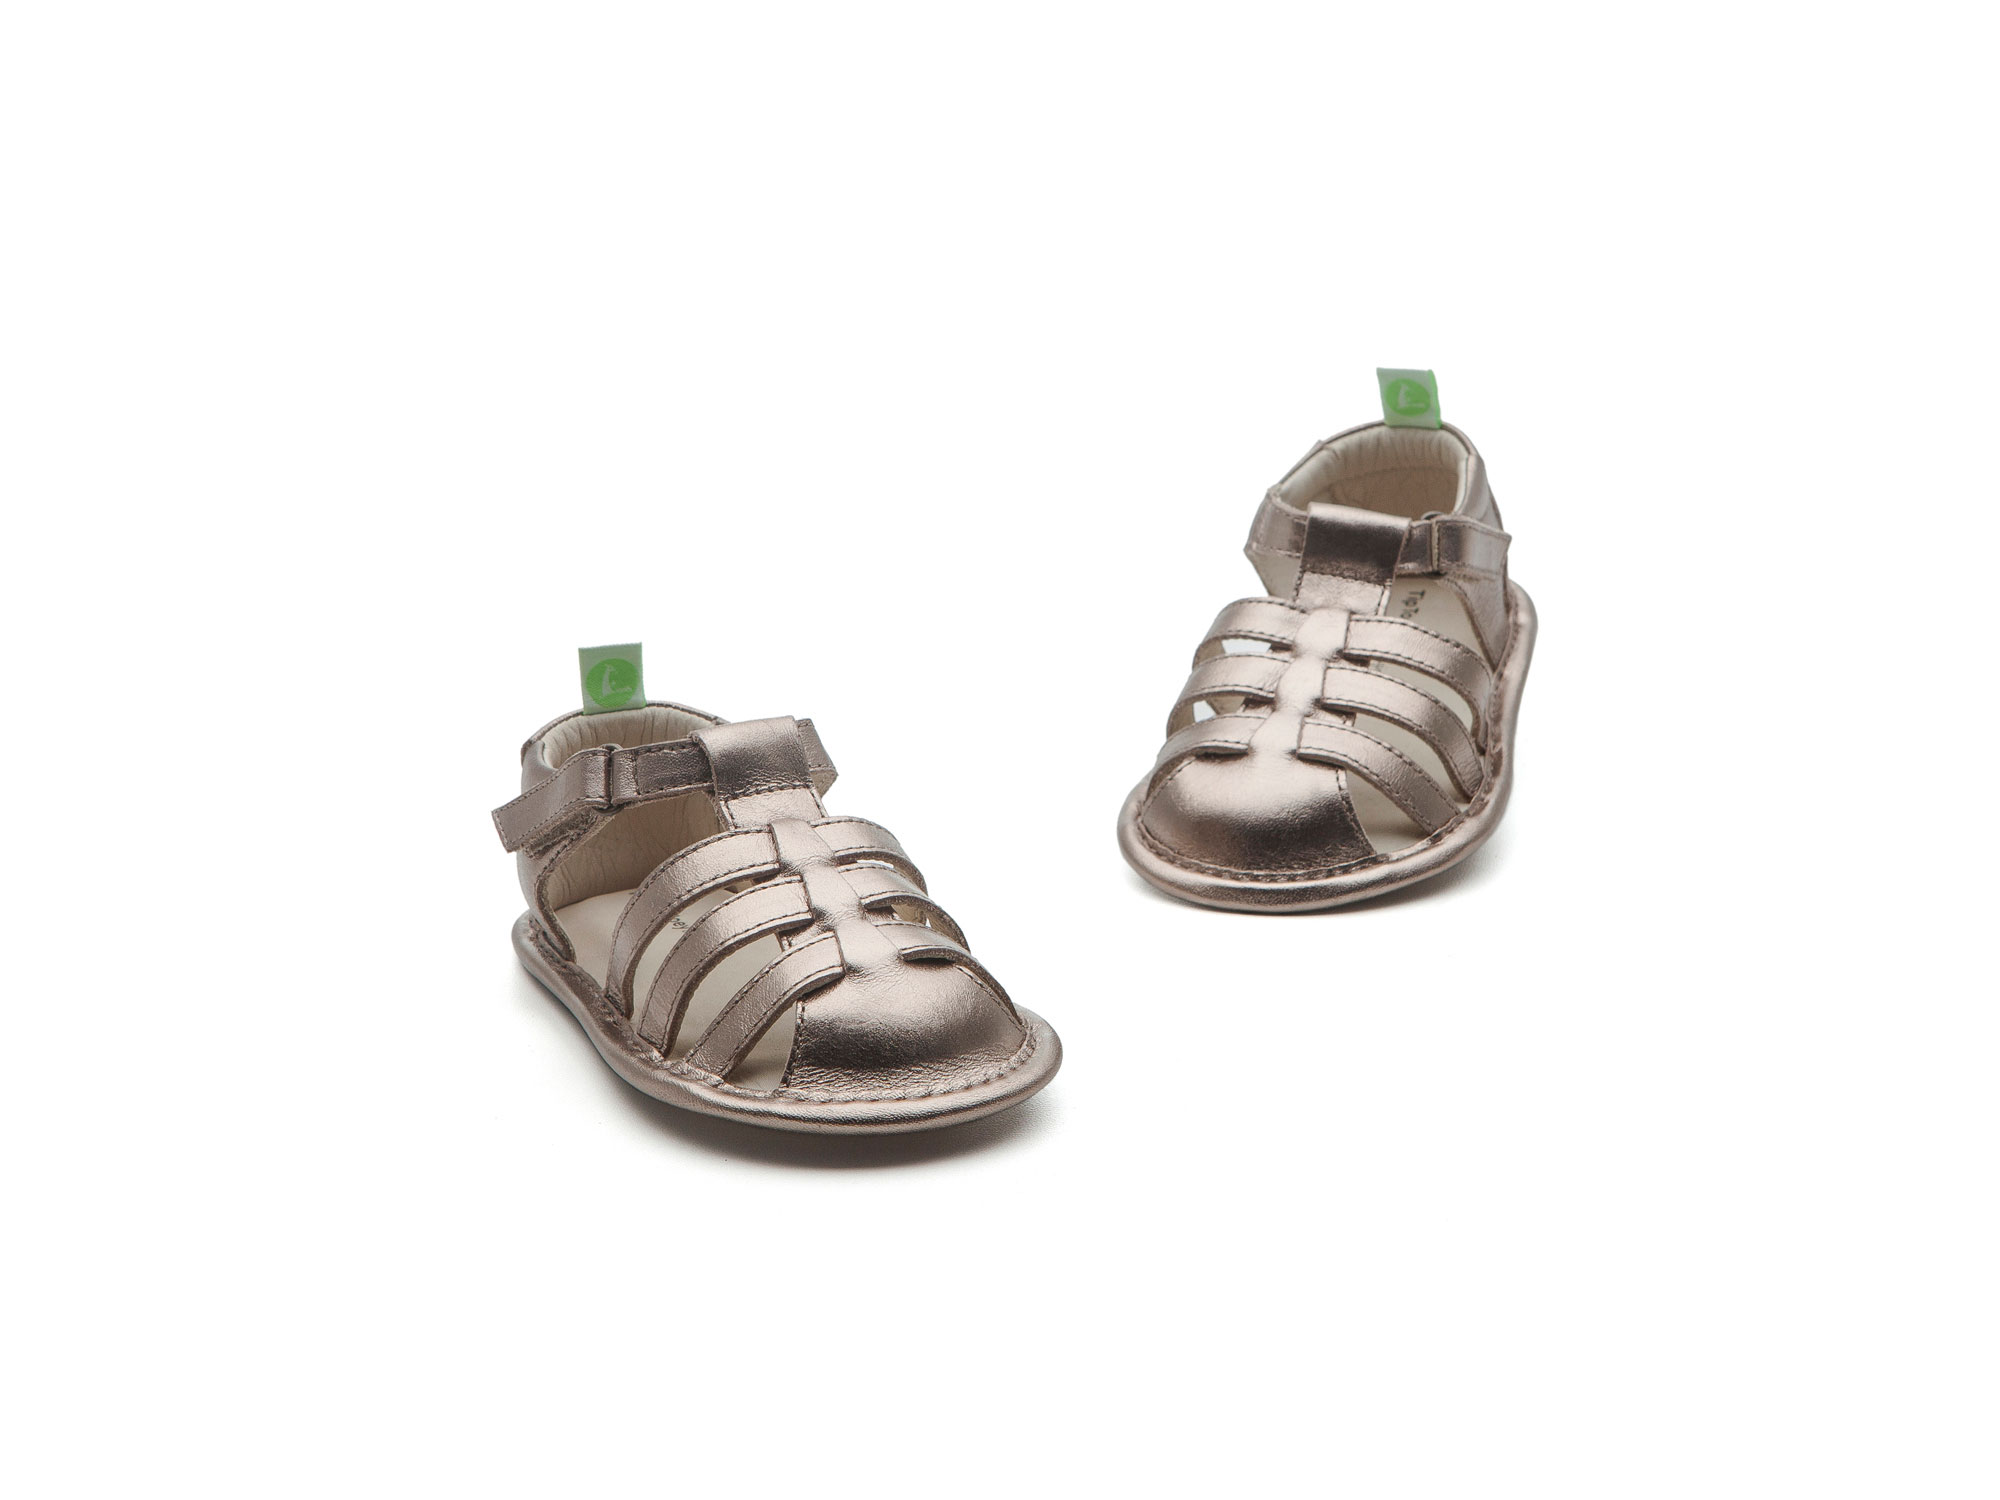 Sandal Minty Gold Sparkle  Baby for ages 0 to 2 years - 1